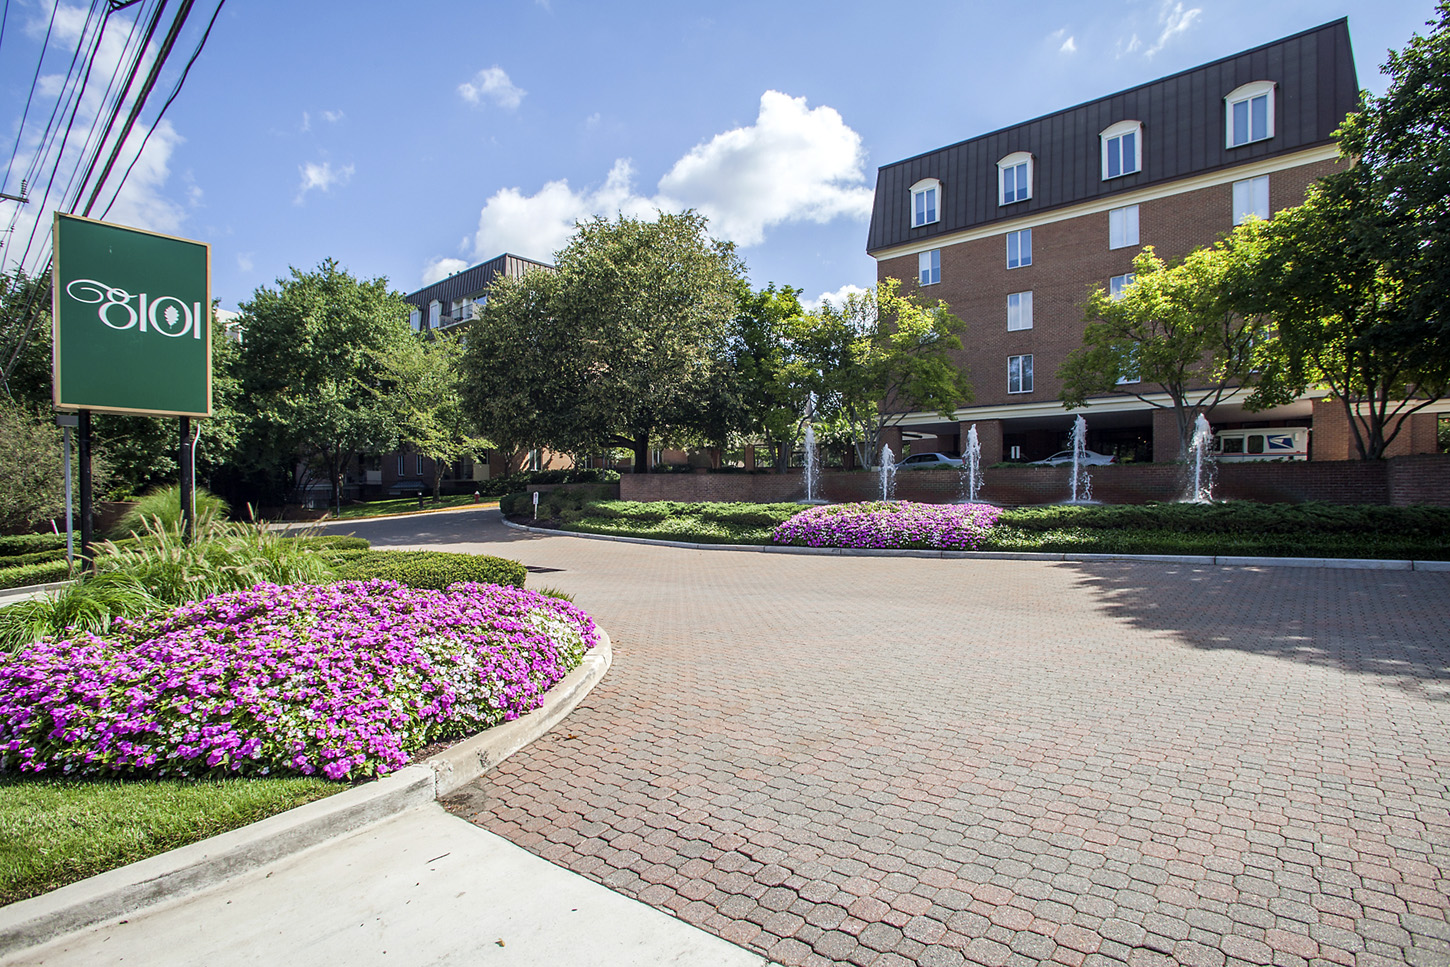 HOMEVISIT VIRTUAL TOUR: 8101 CONNECTICUT AVE N #602, CHEVY CHASE, MD